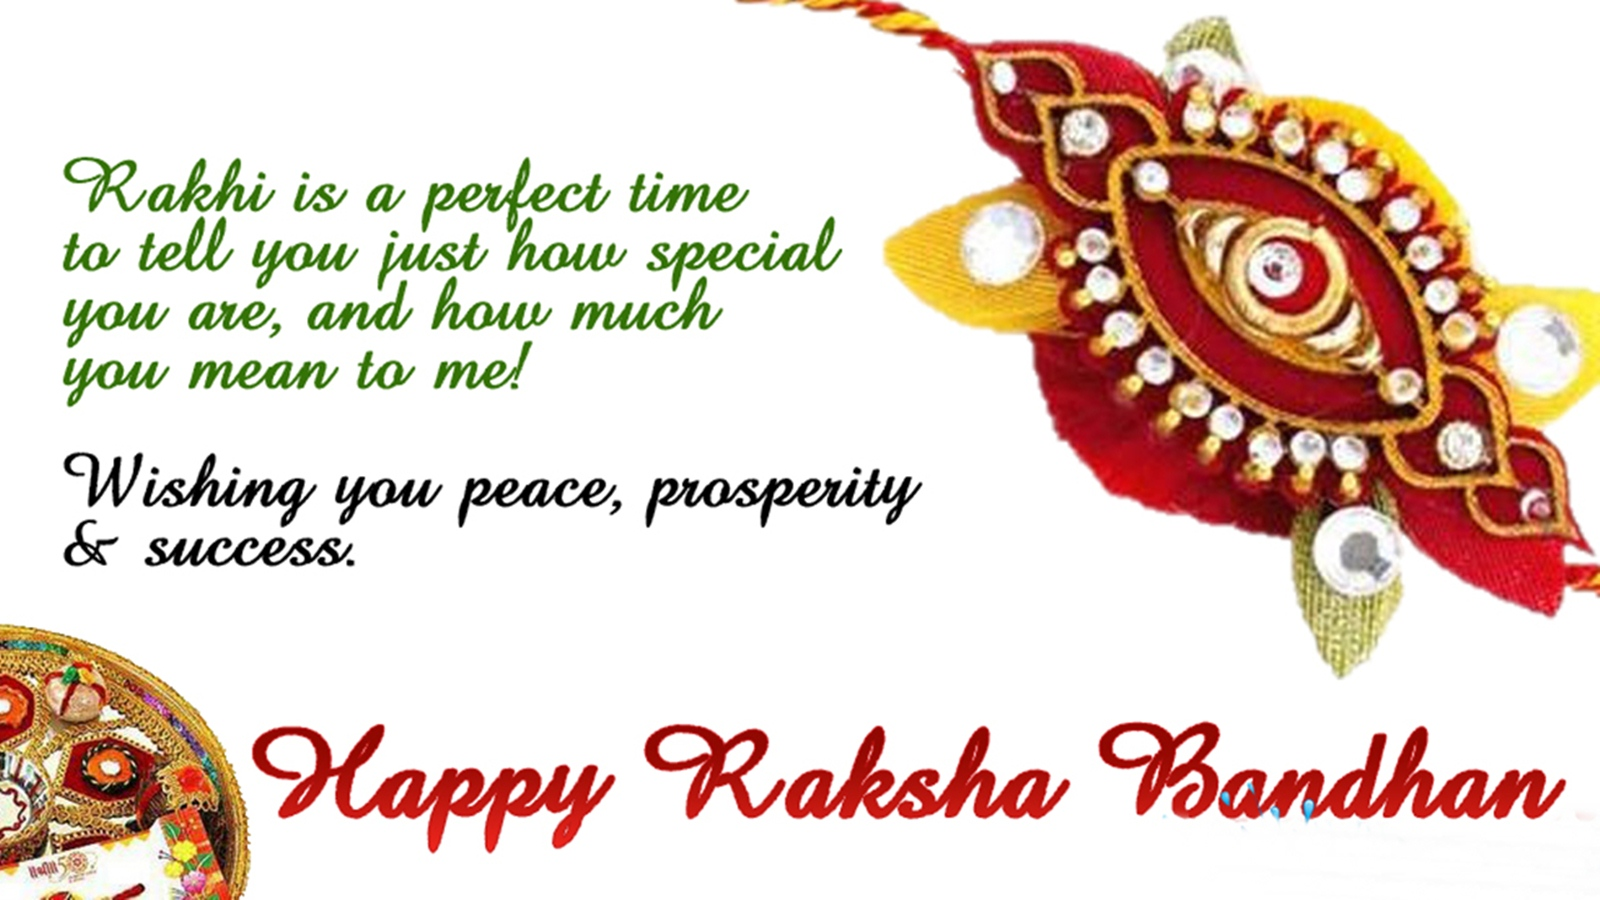 Happy Raksha Bandhan wishes and messages in English for ...